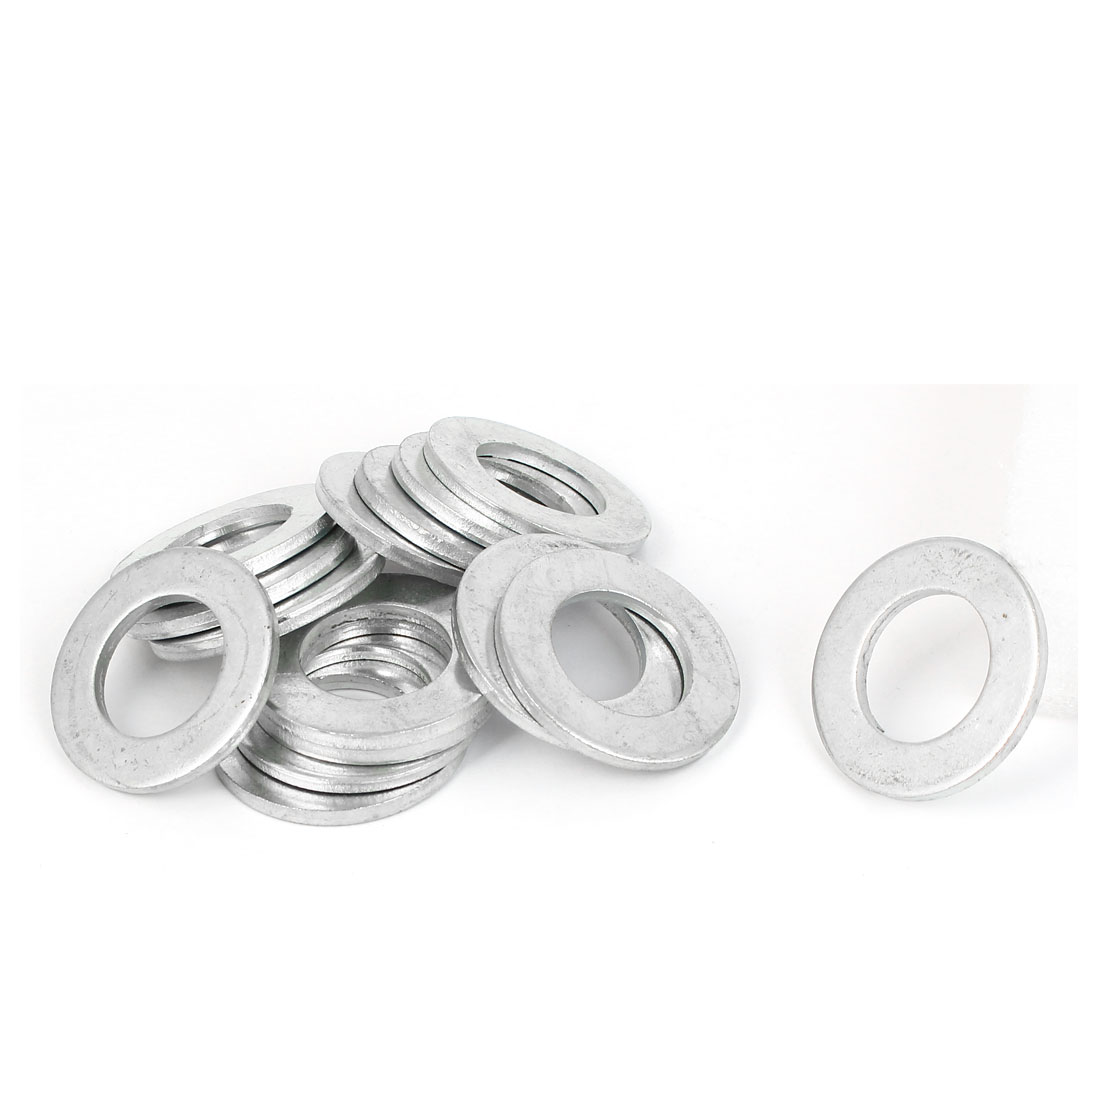 22mm x 38mm x 3mm Zinc Plated Flat Pads Washers Gaskets Fasteners GB97 15PCS